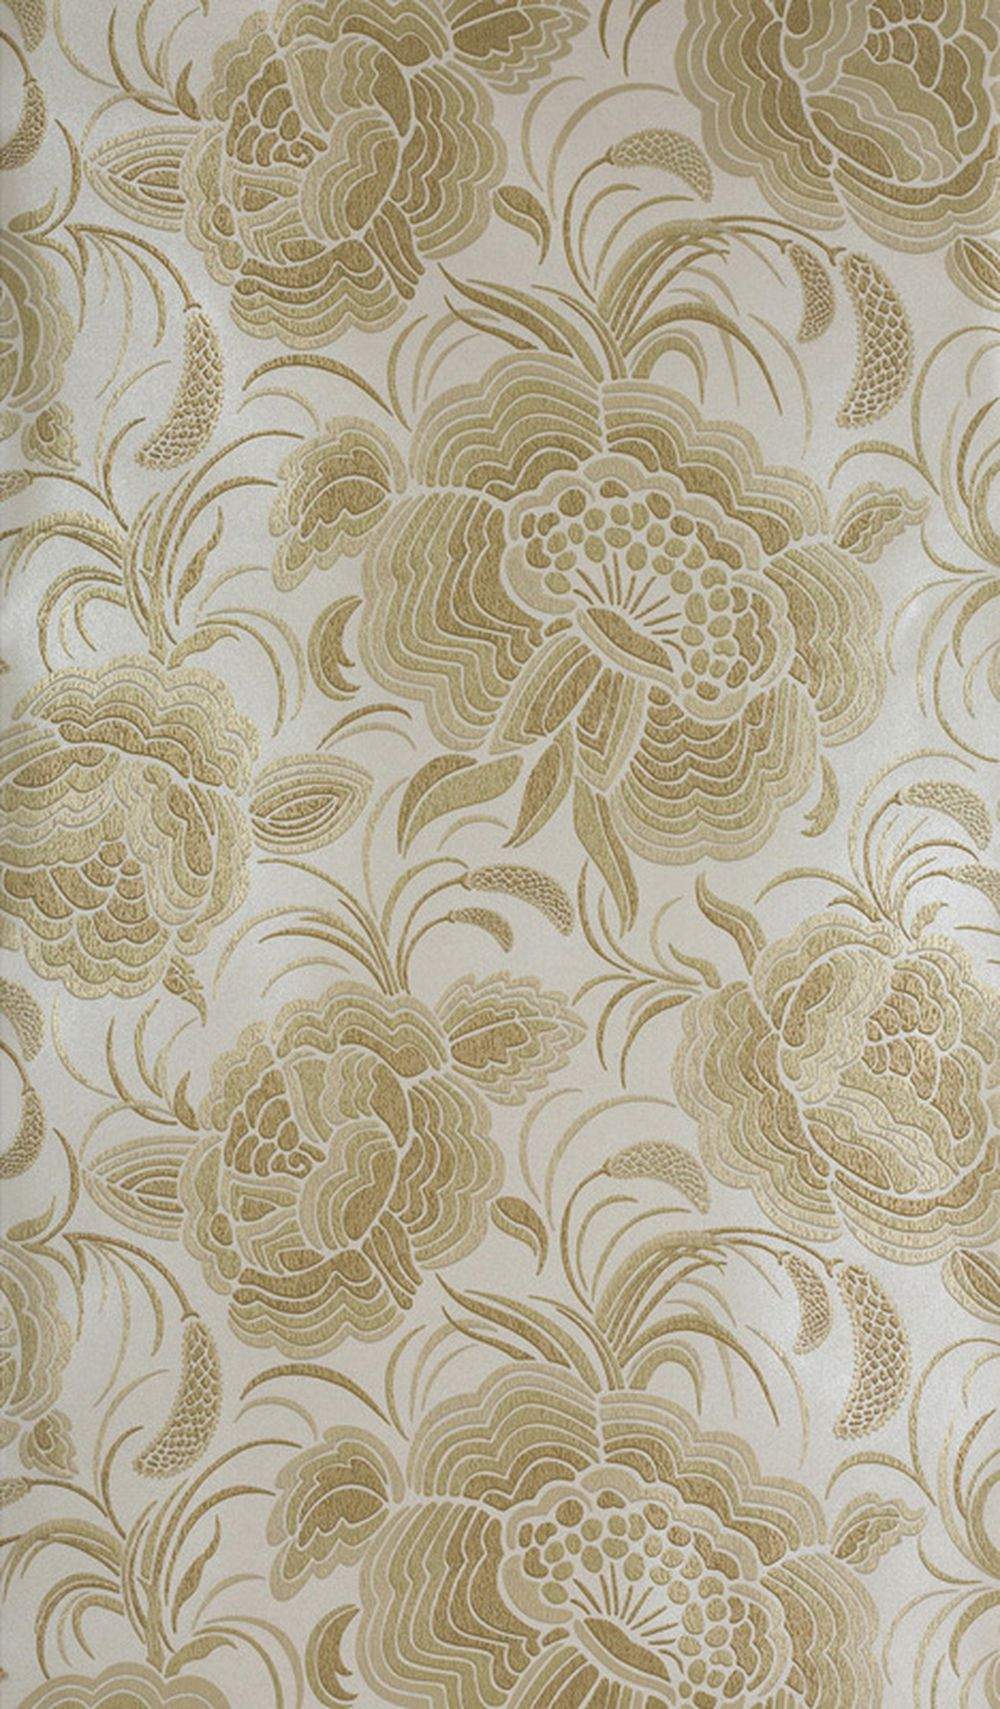 Photo of the fabric Splendour A Wallpaper Champagne 802 swatch by Catherine Martin by Mokum. Use for Wall Covering. Style of Floral And Botannical, Pattern